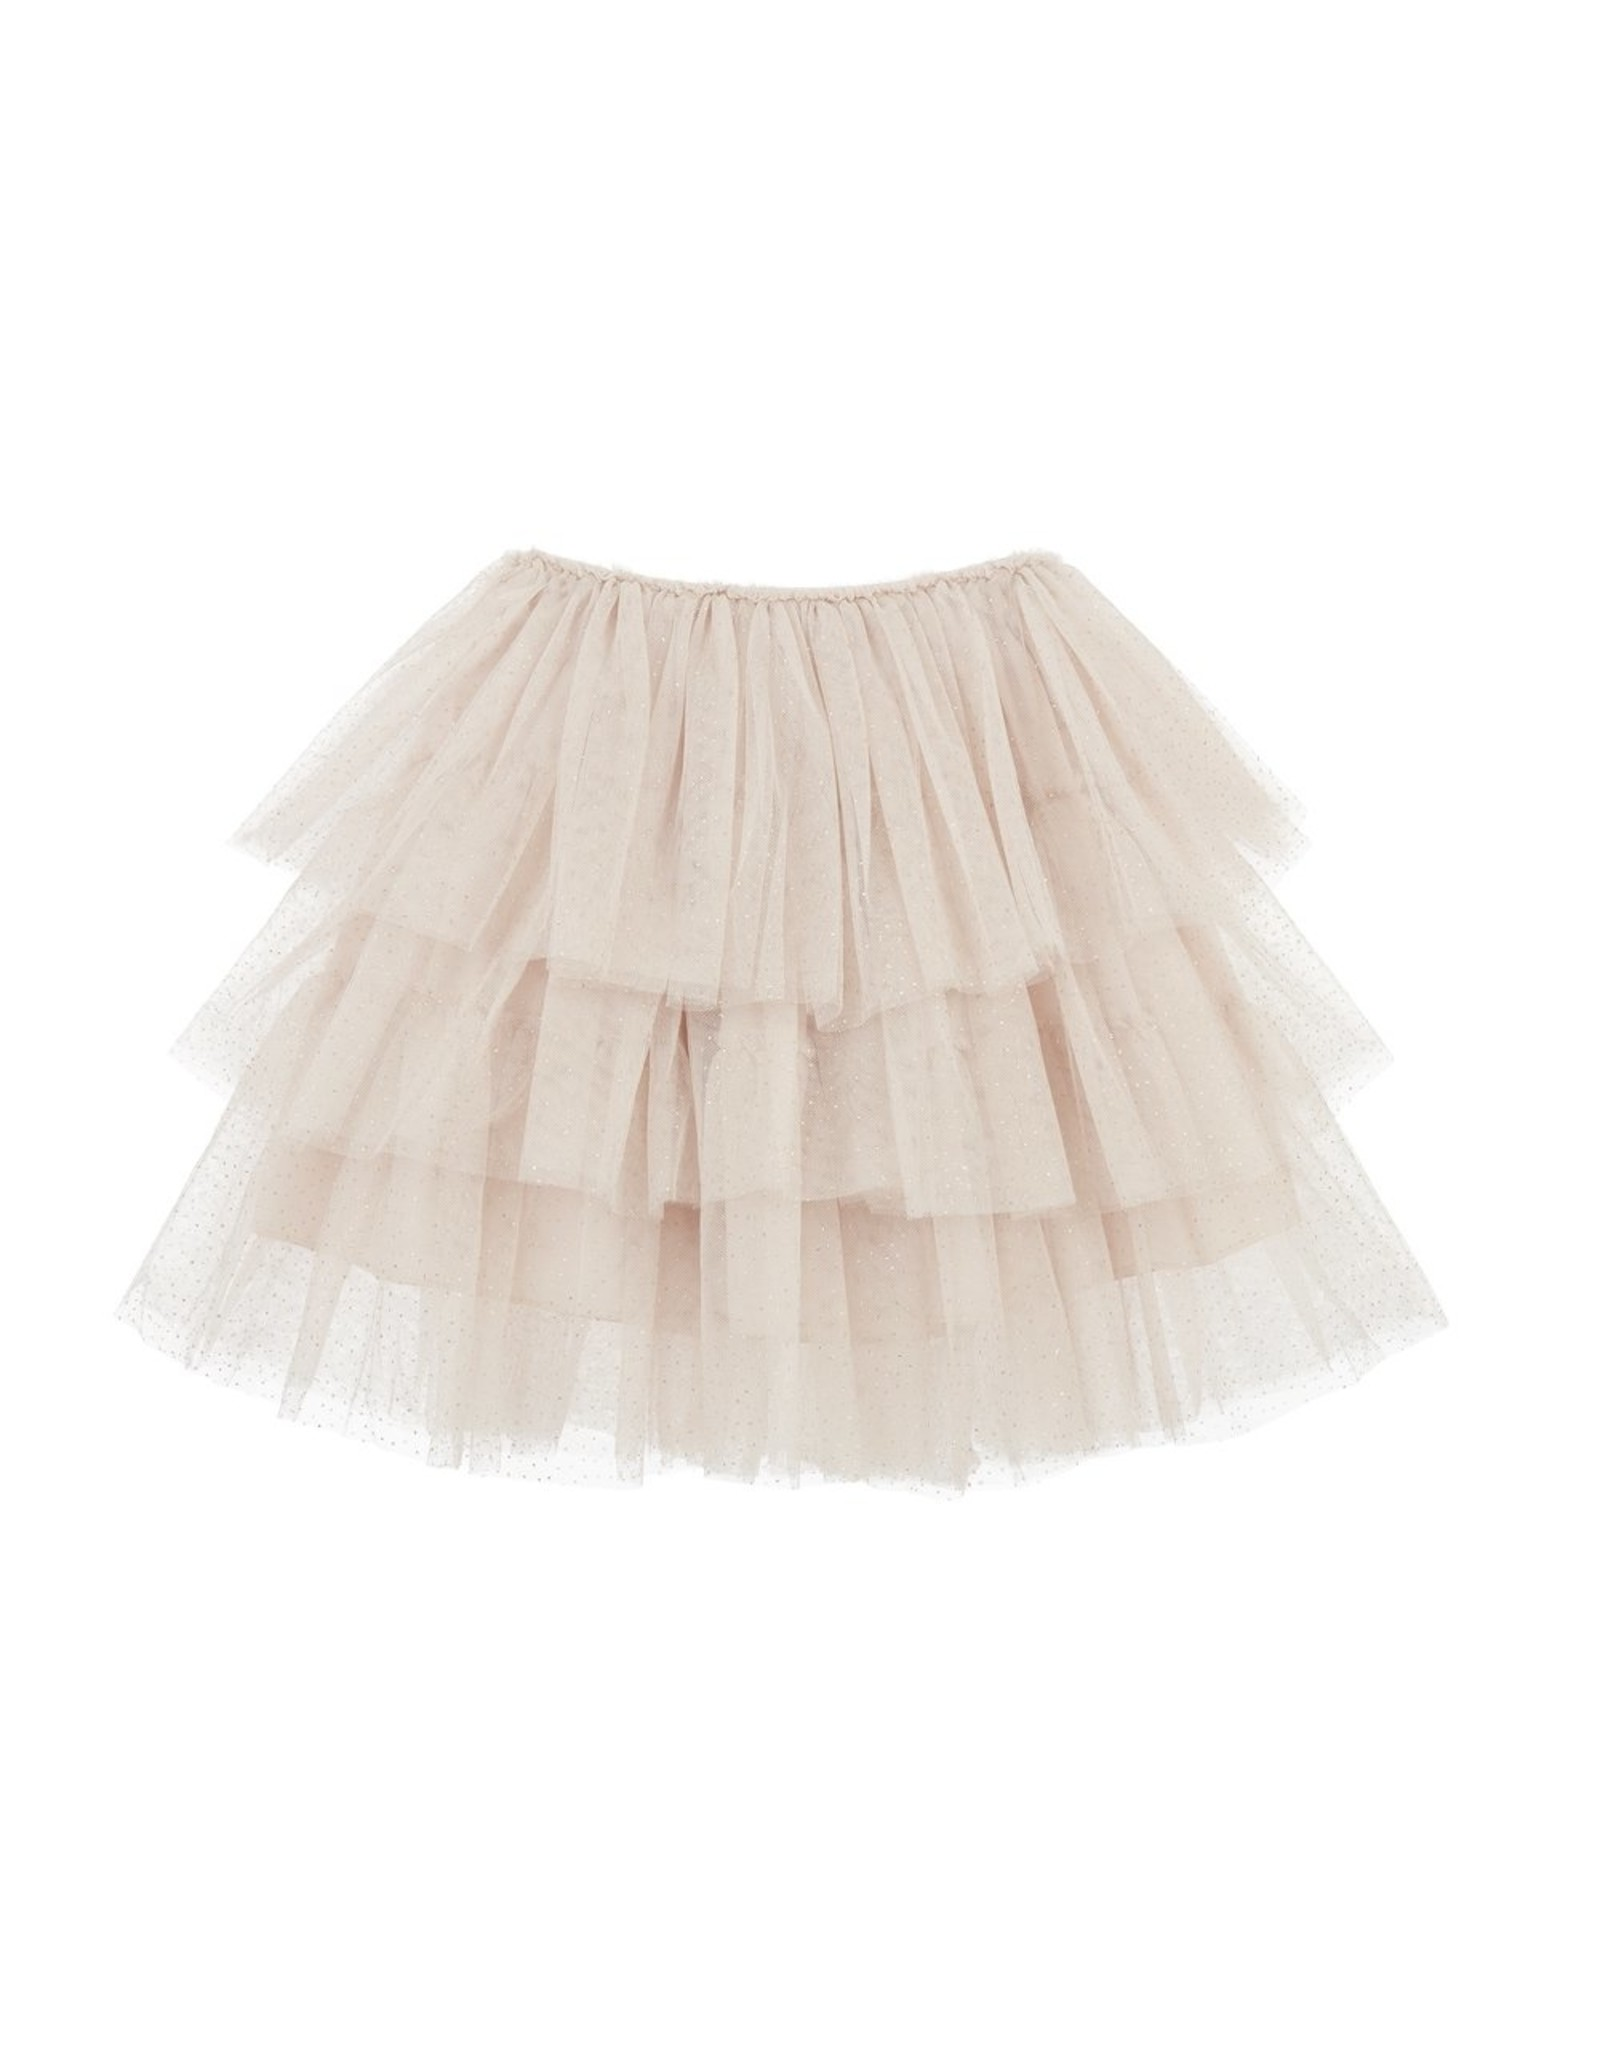 Mimi and Lula M&L - Ruffle Tutu